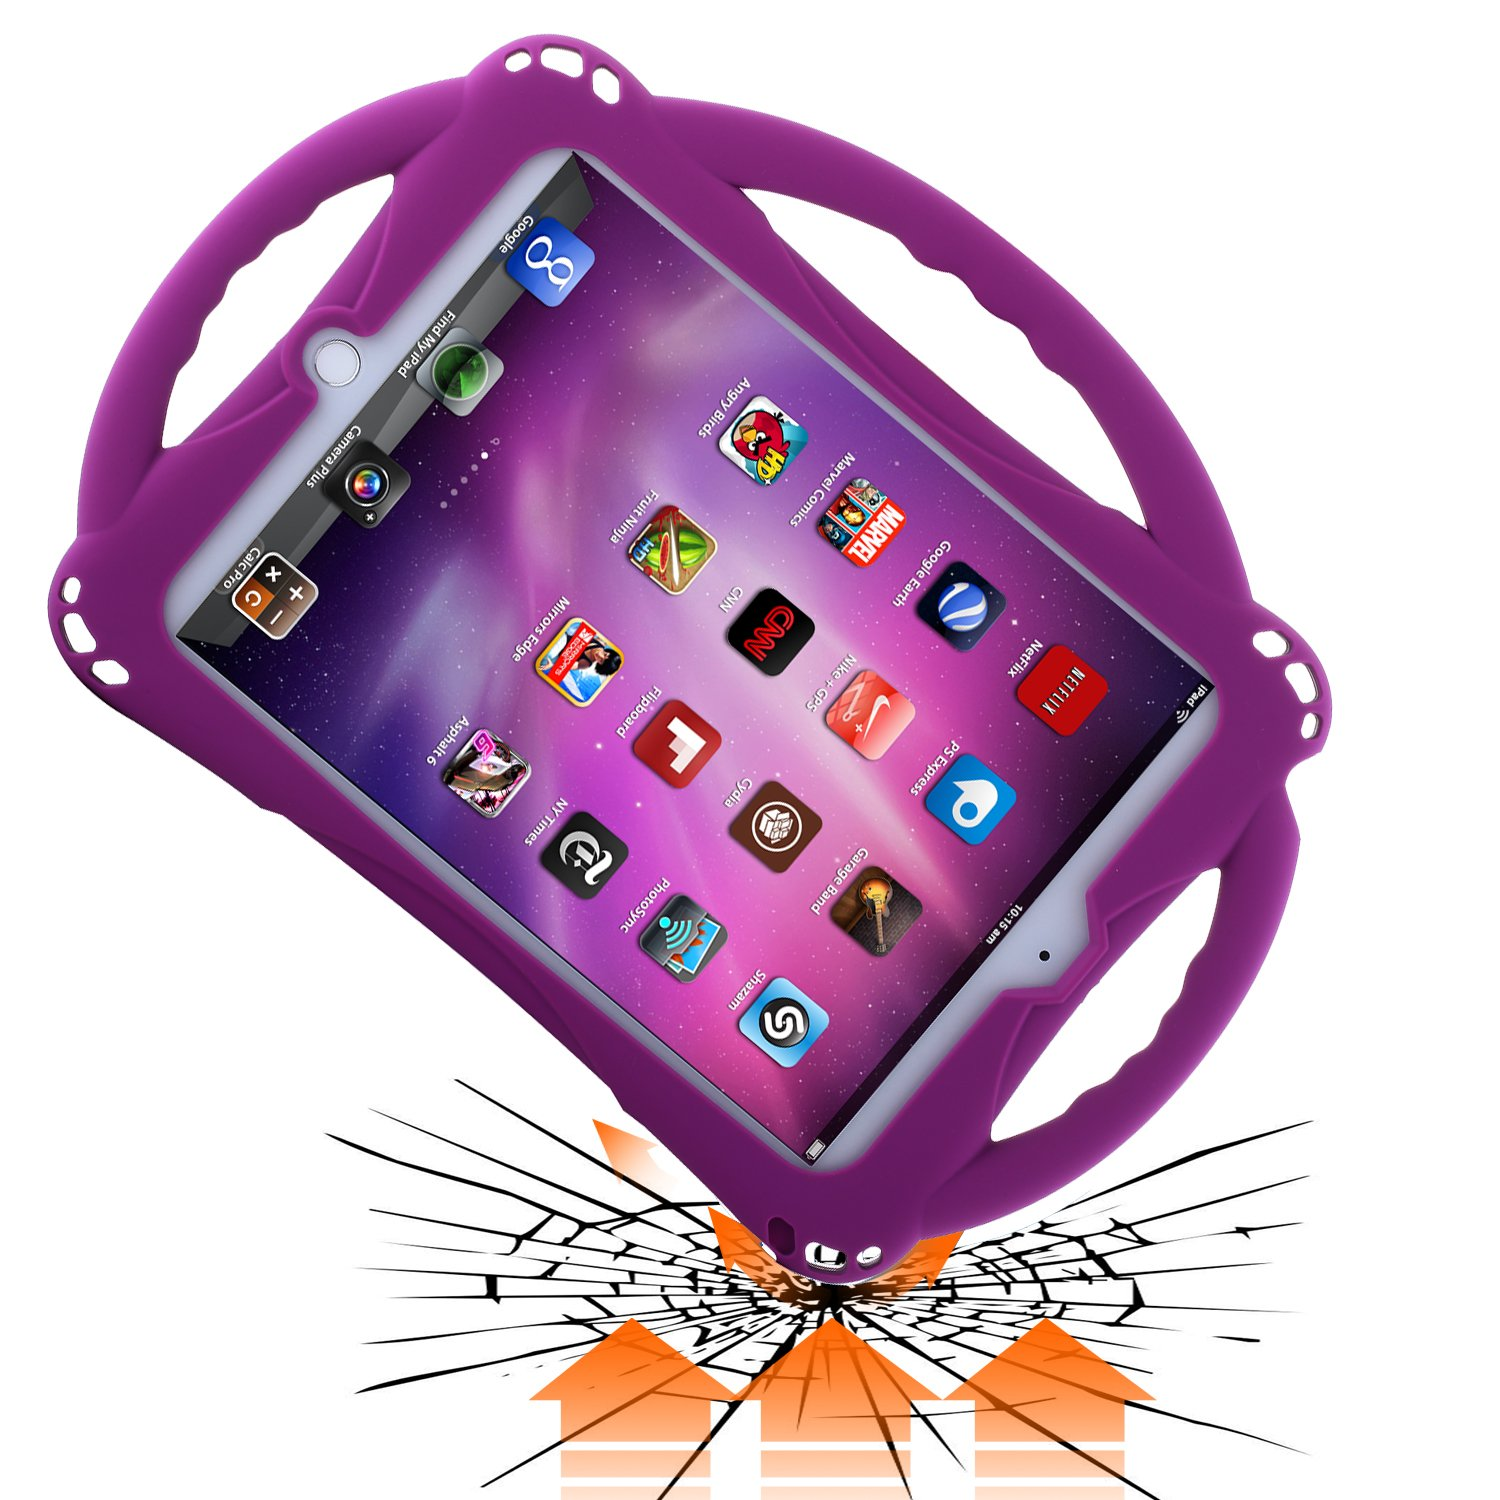 New iPad 2019/2018 9.7 inch Case/iPad Air Case, TopEsct Shockproof Silicone Handle Stand Case Cover&(Tempered Glass Screen Protector) for Apple iPad 9.7inch(2019/2018 Edition) and iPad Air (Purple)